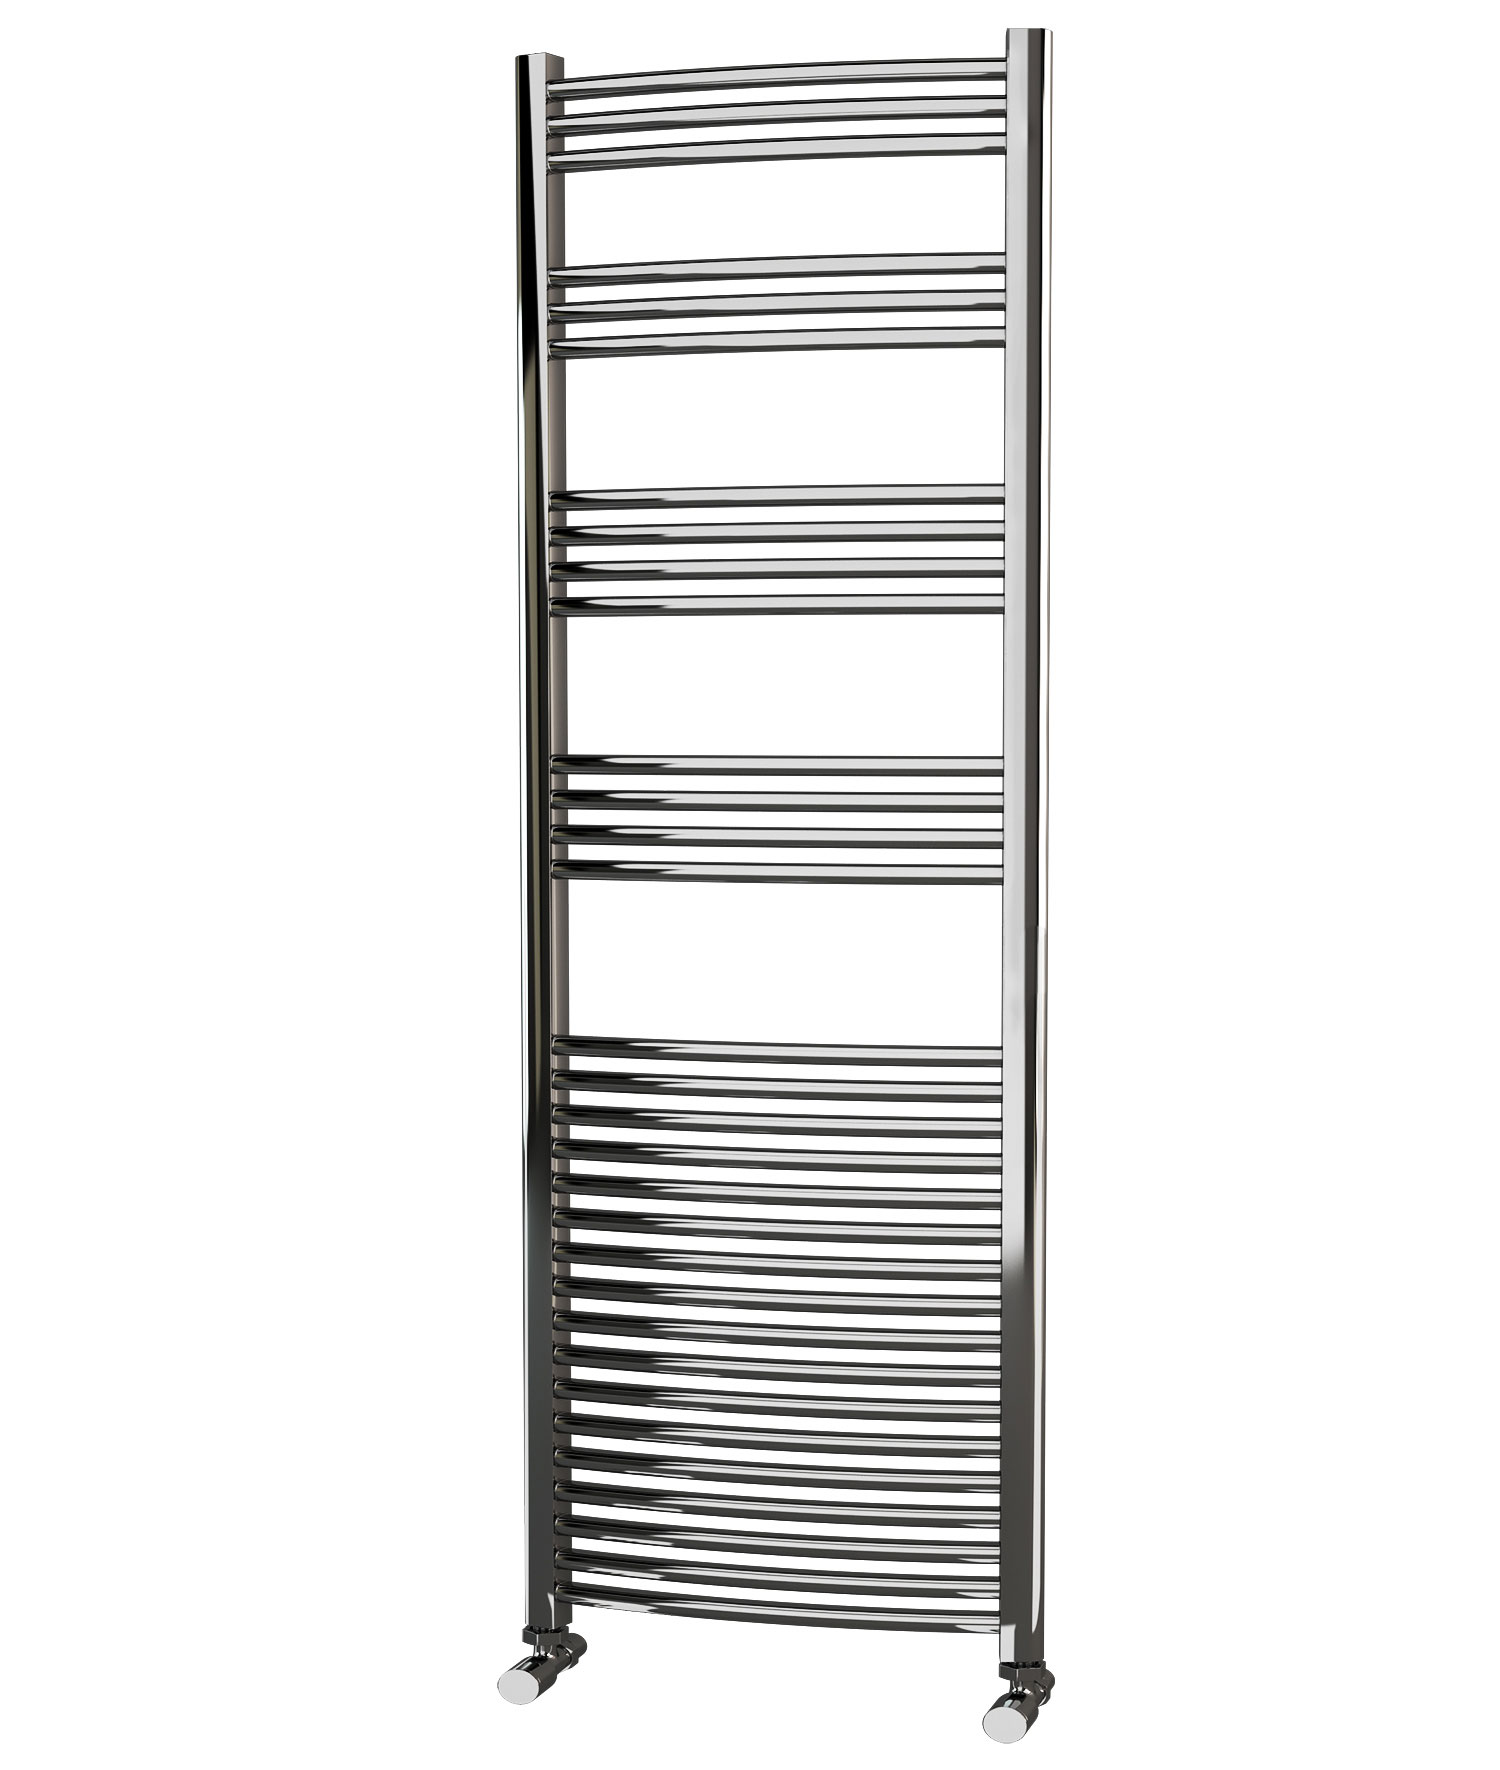 Kudox Electric Towel Rail Straight Standard 600mm X 1800mm: Eastgate Curved Chrome Heated Towel Rail 1800mm High X